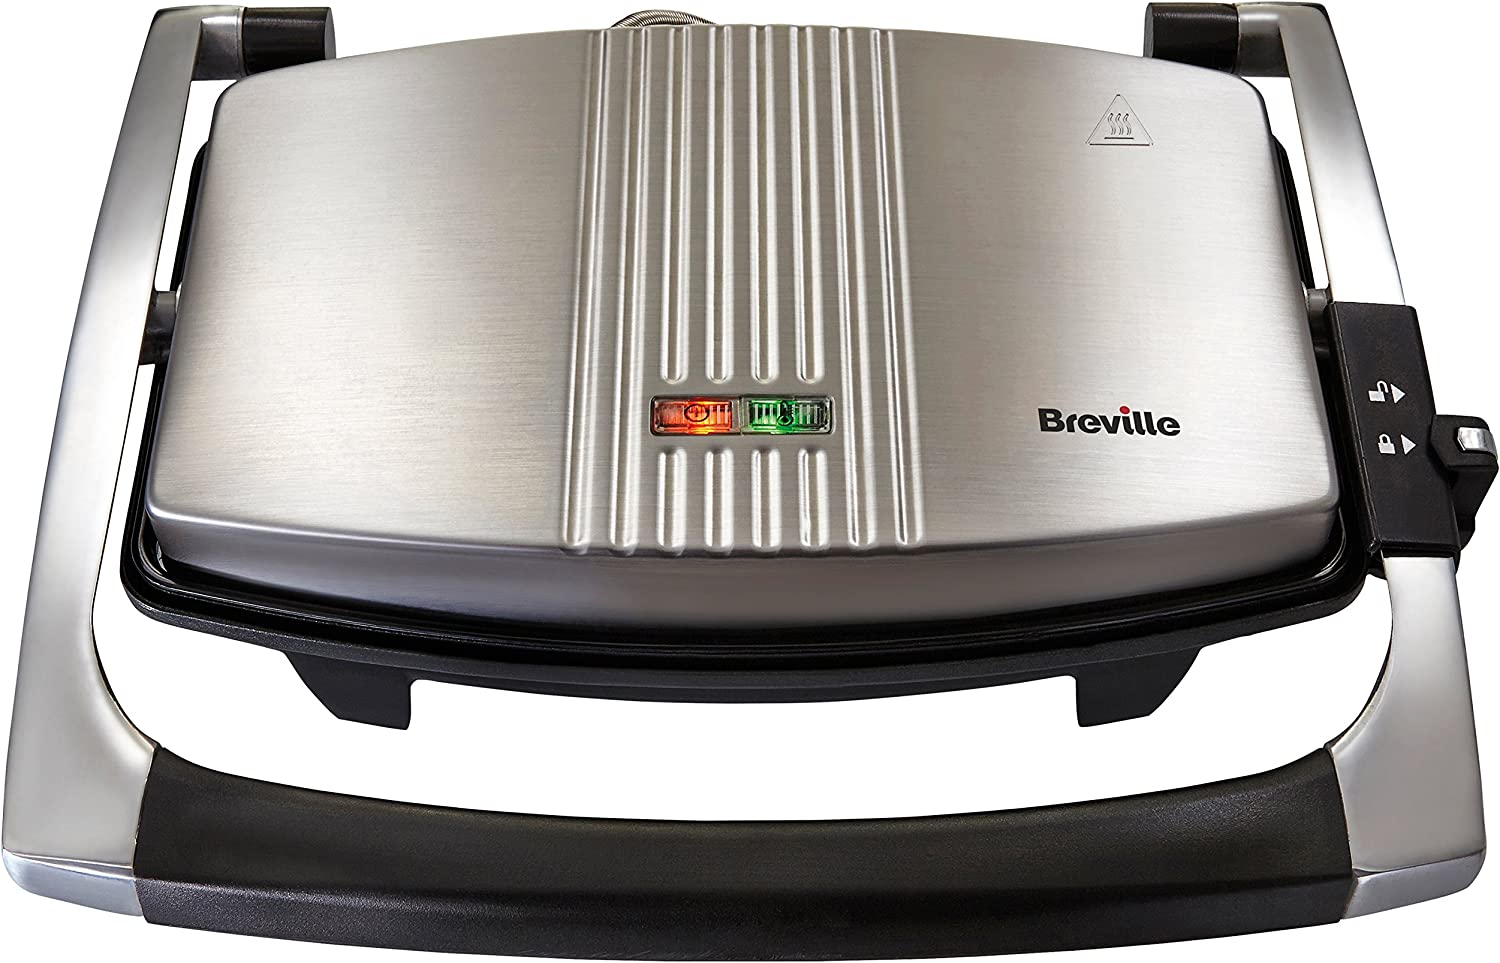 Breville Sandwich/Panini Press and Toastie Maker, 3-Slice, Stainless Steel [VST025]